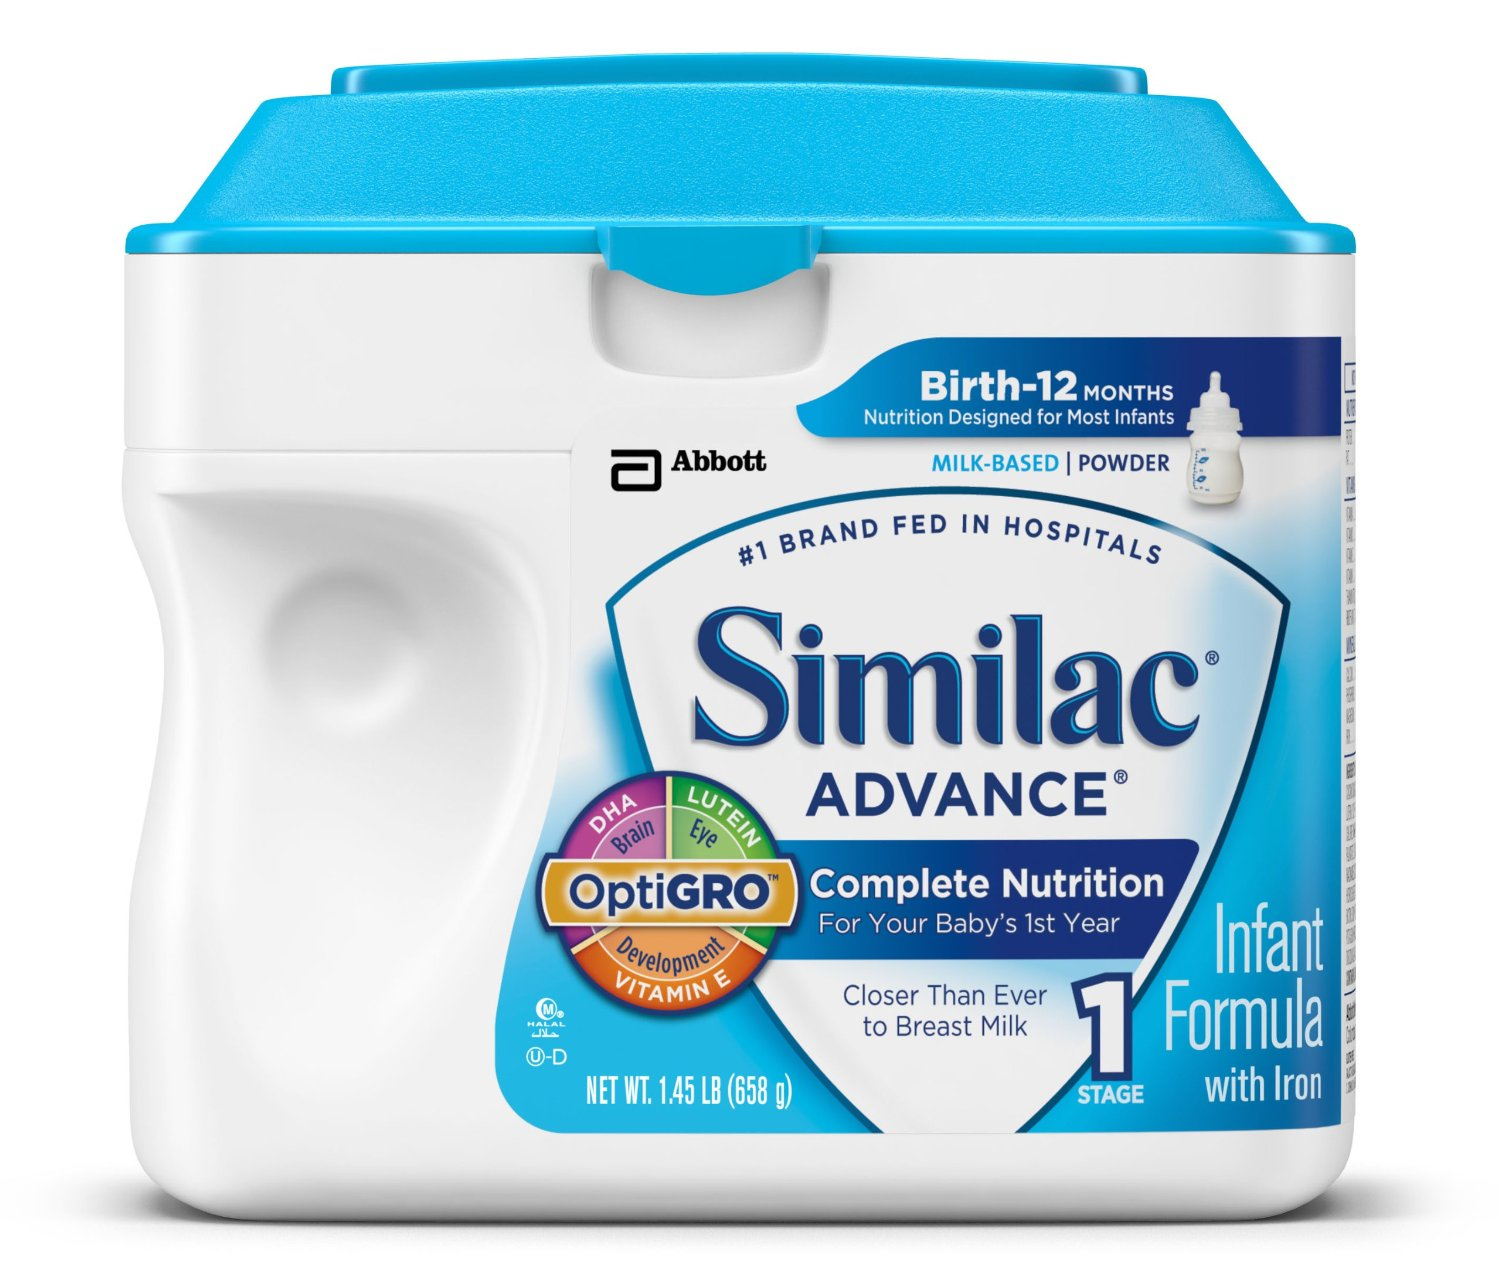 How To Get Coupons For Similac Baby Formula / Wcco Dining Out Deals - Free Baby Formula Coupons Printable